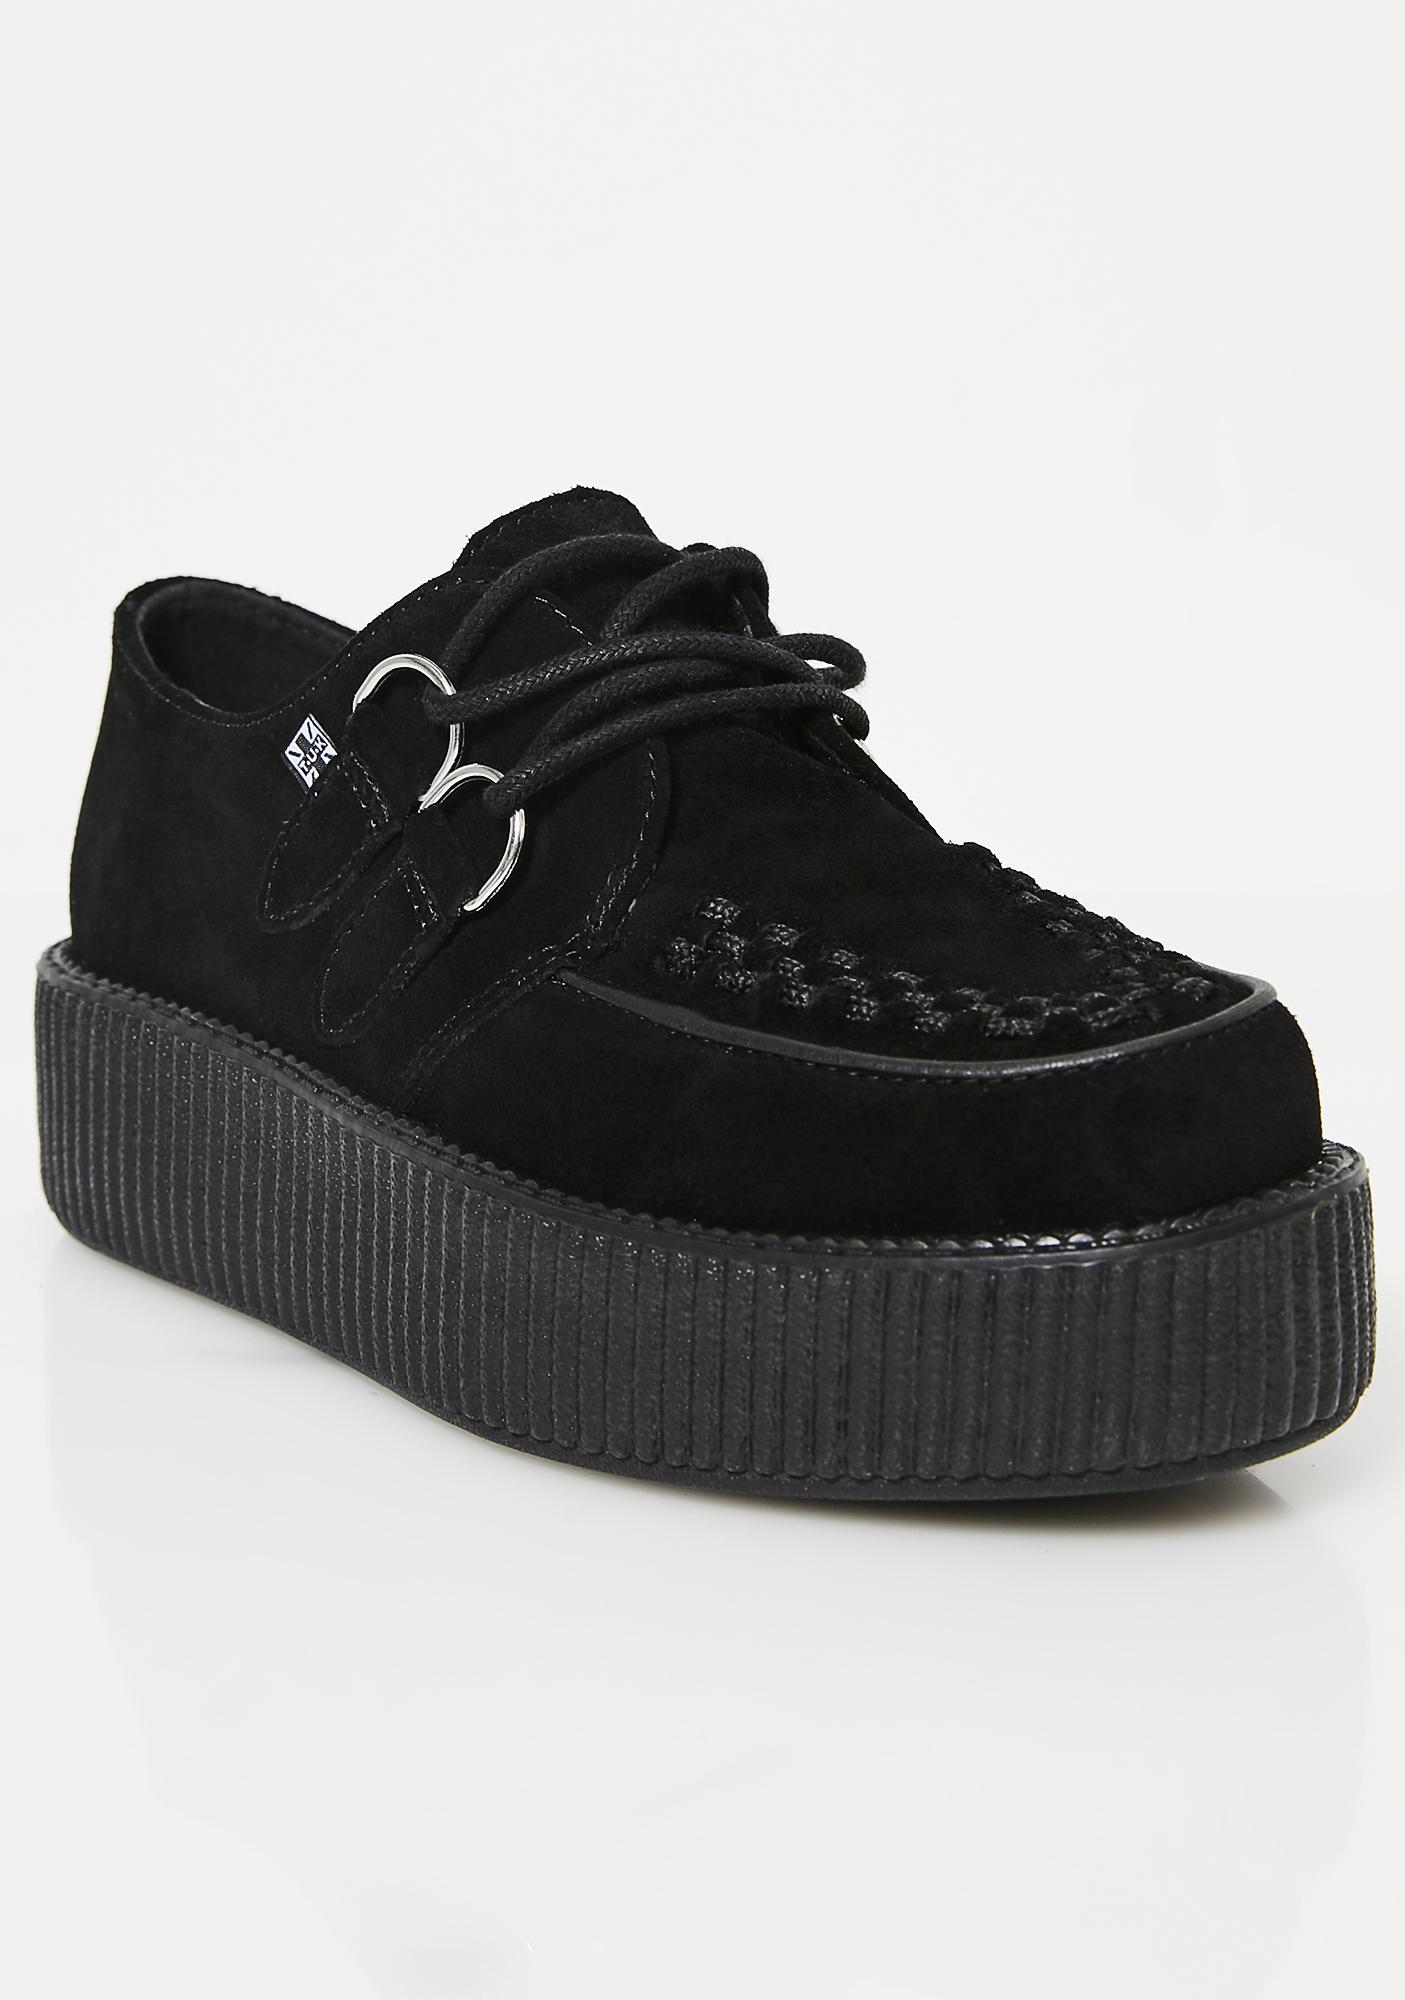 reputable site ce406 76613 Suede Viva Mondo Creepers